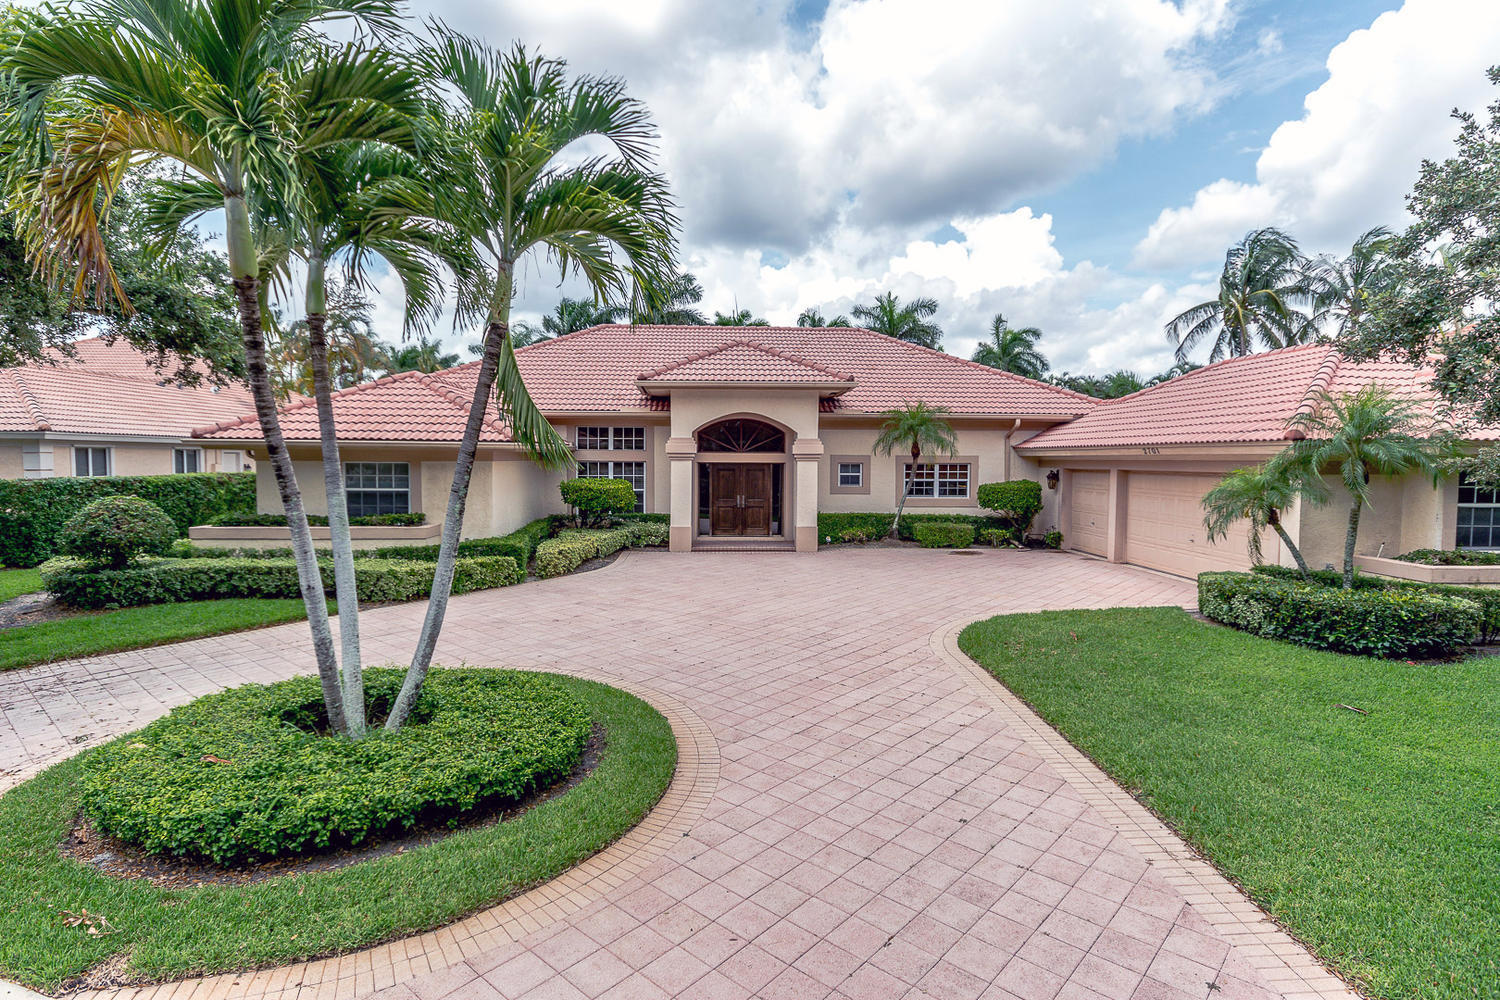 6 Bed 4 Full 1 Partial Baths Home In West Palm Beach For 849 000